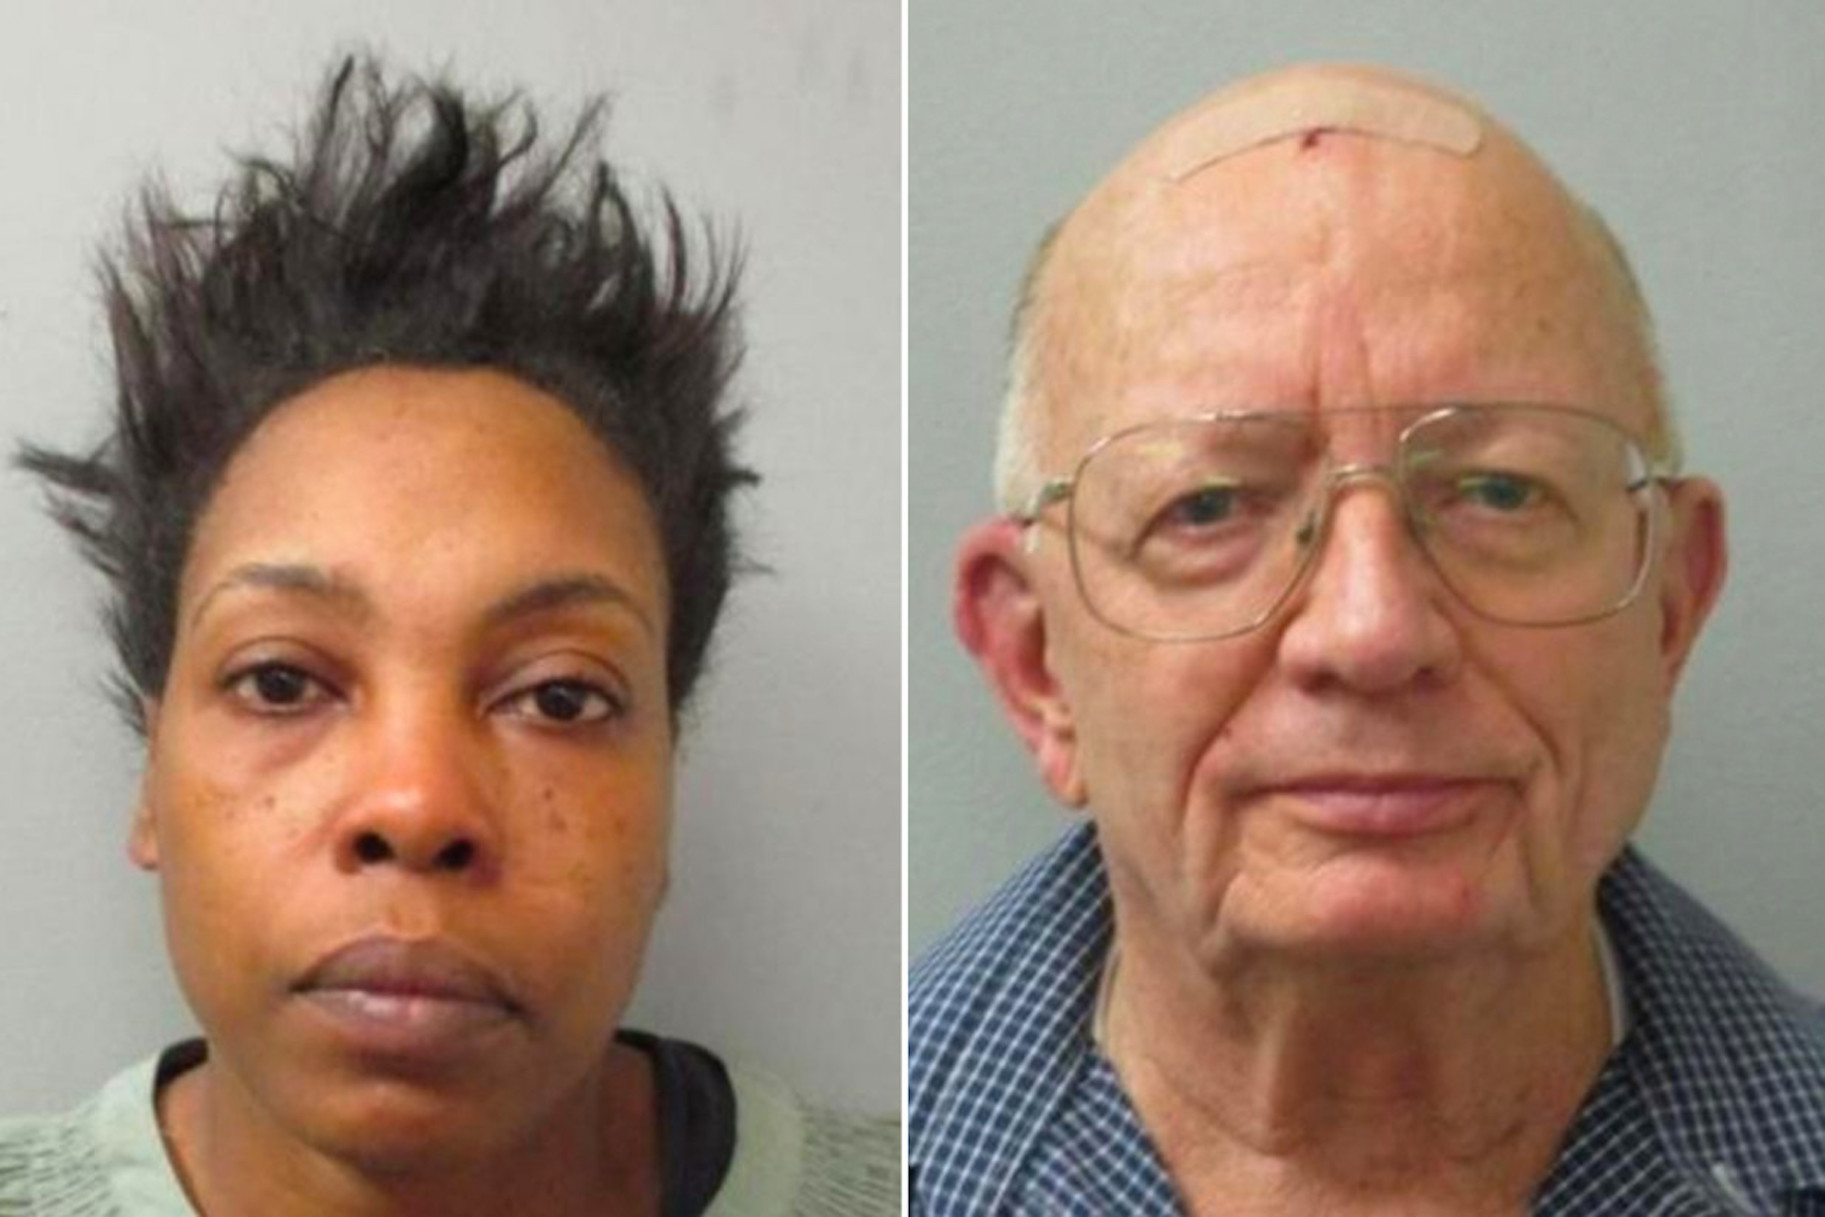 Chequita Jenkins (left) and John Chapman (right) via Huntsville Police